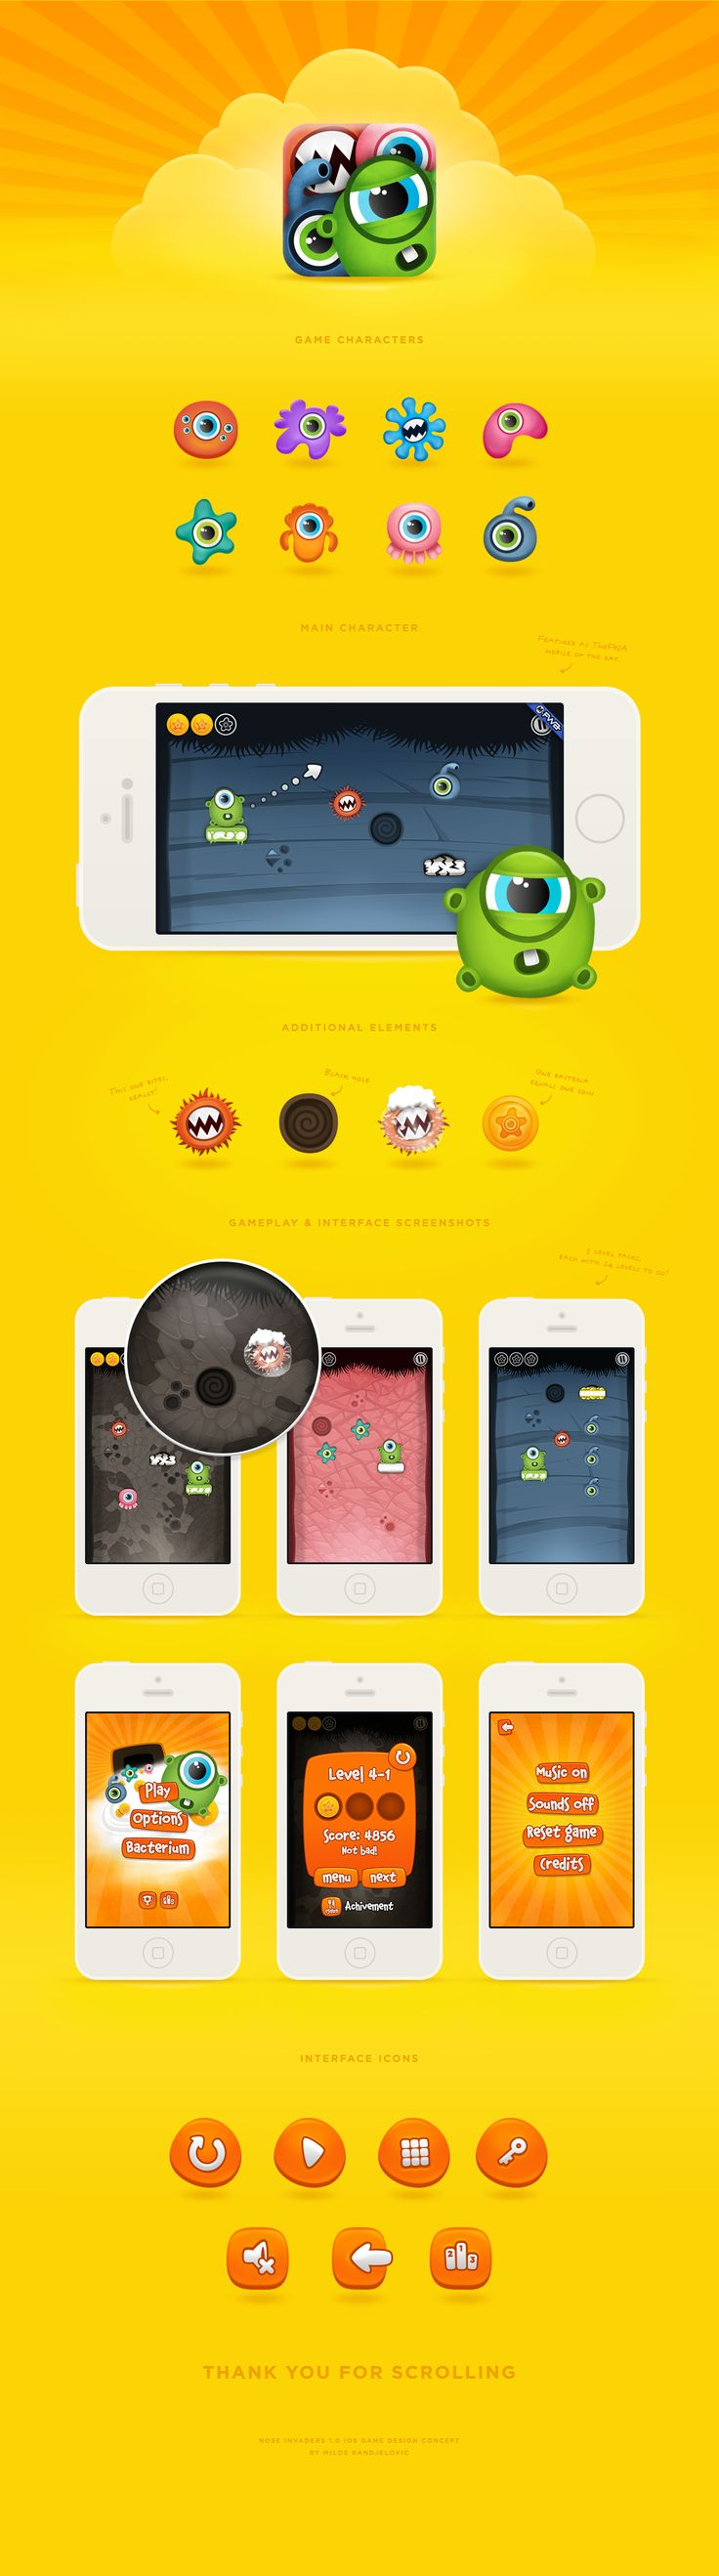 Nose Invaders game design concept #ios #game #design